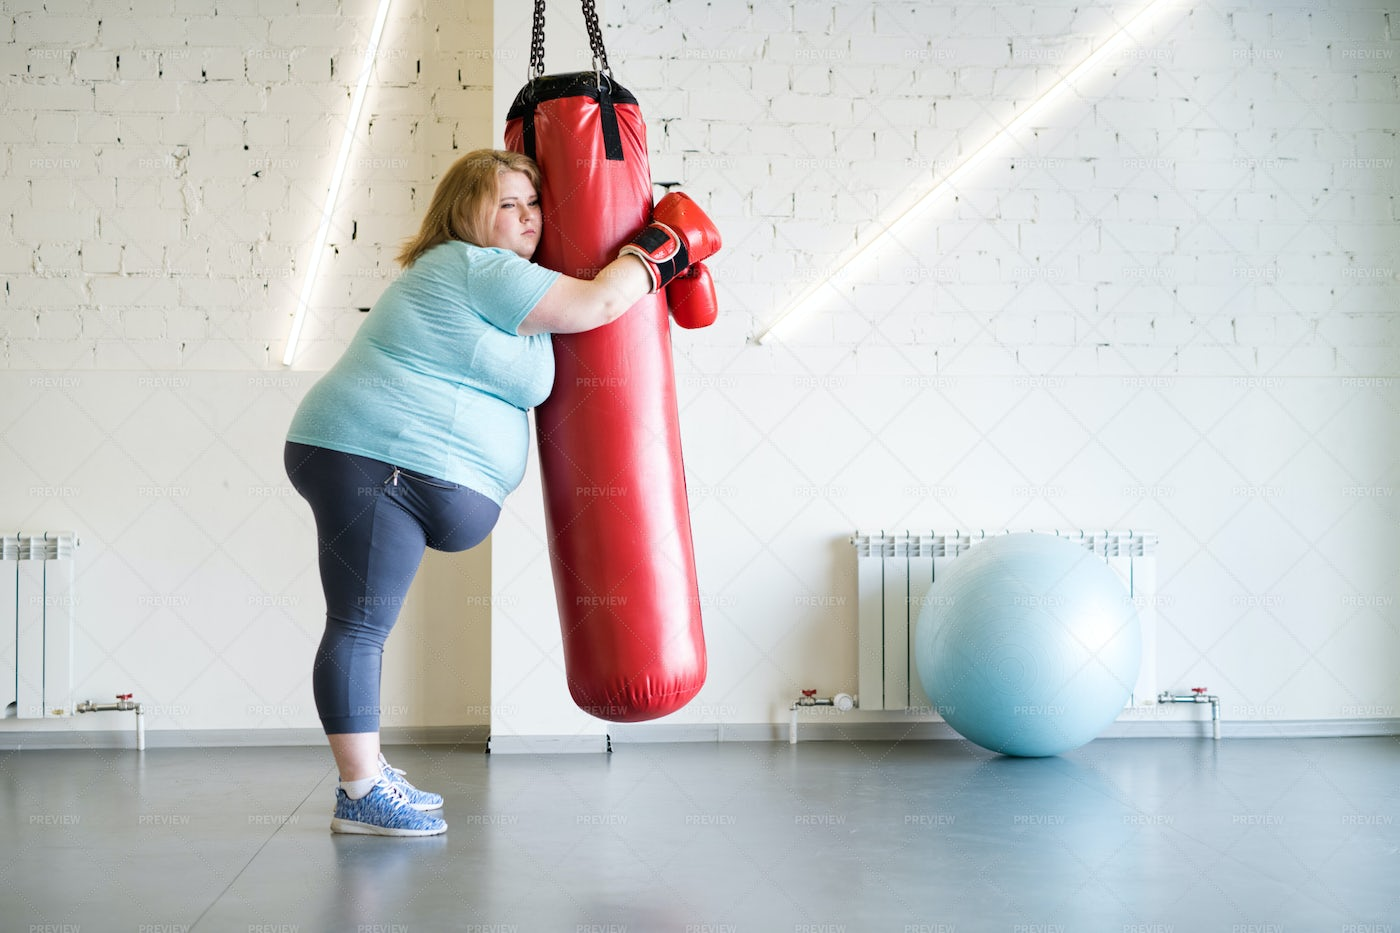 Sad Obese Woman Training In Gym: Stock Photos